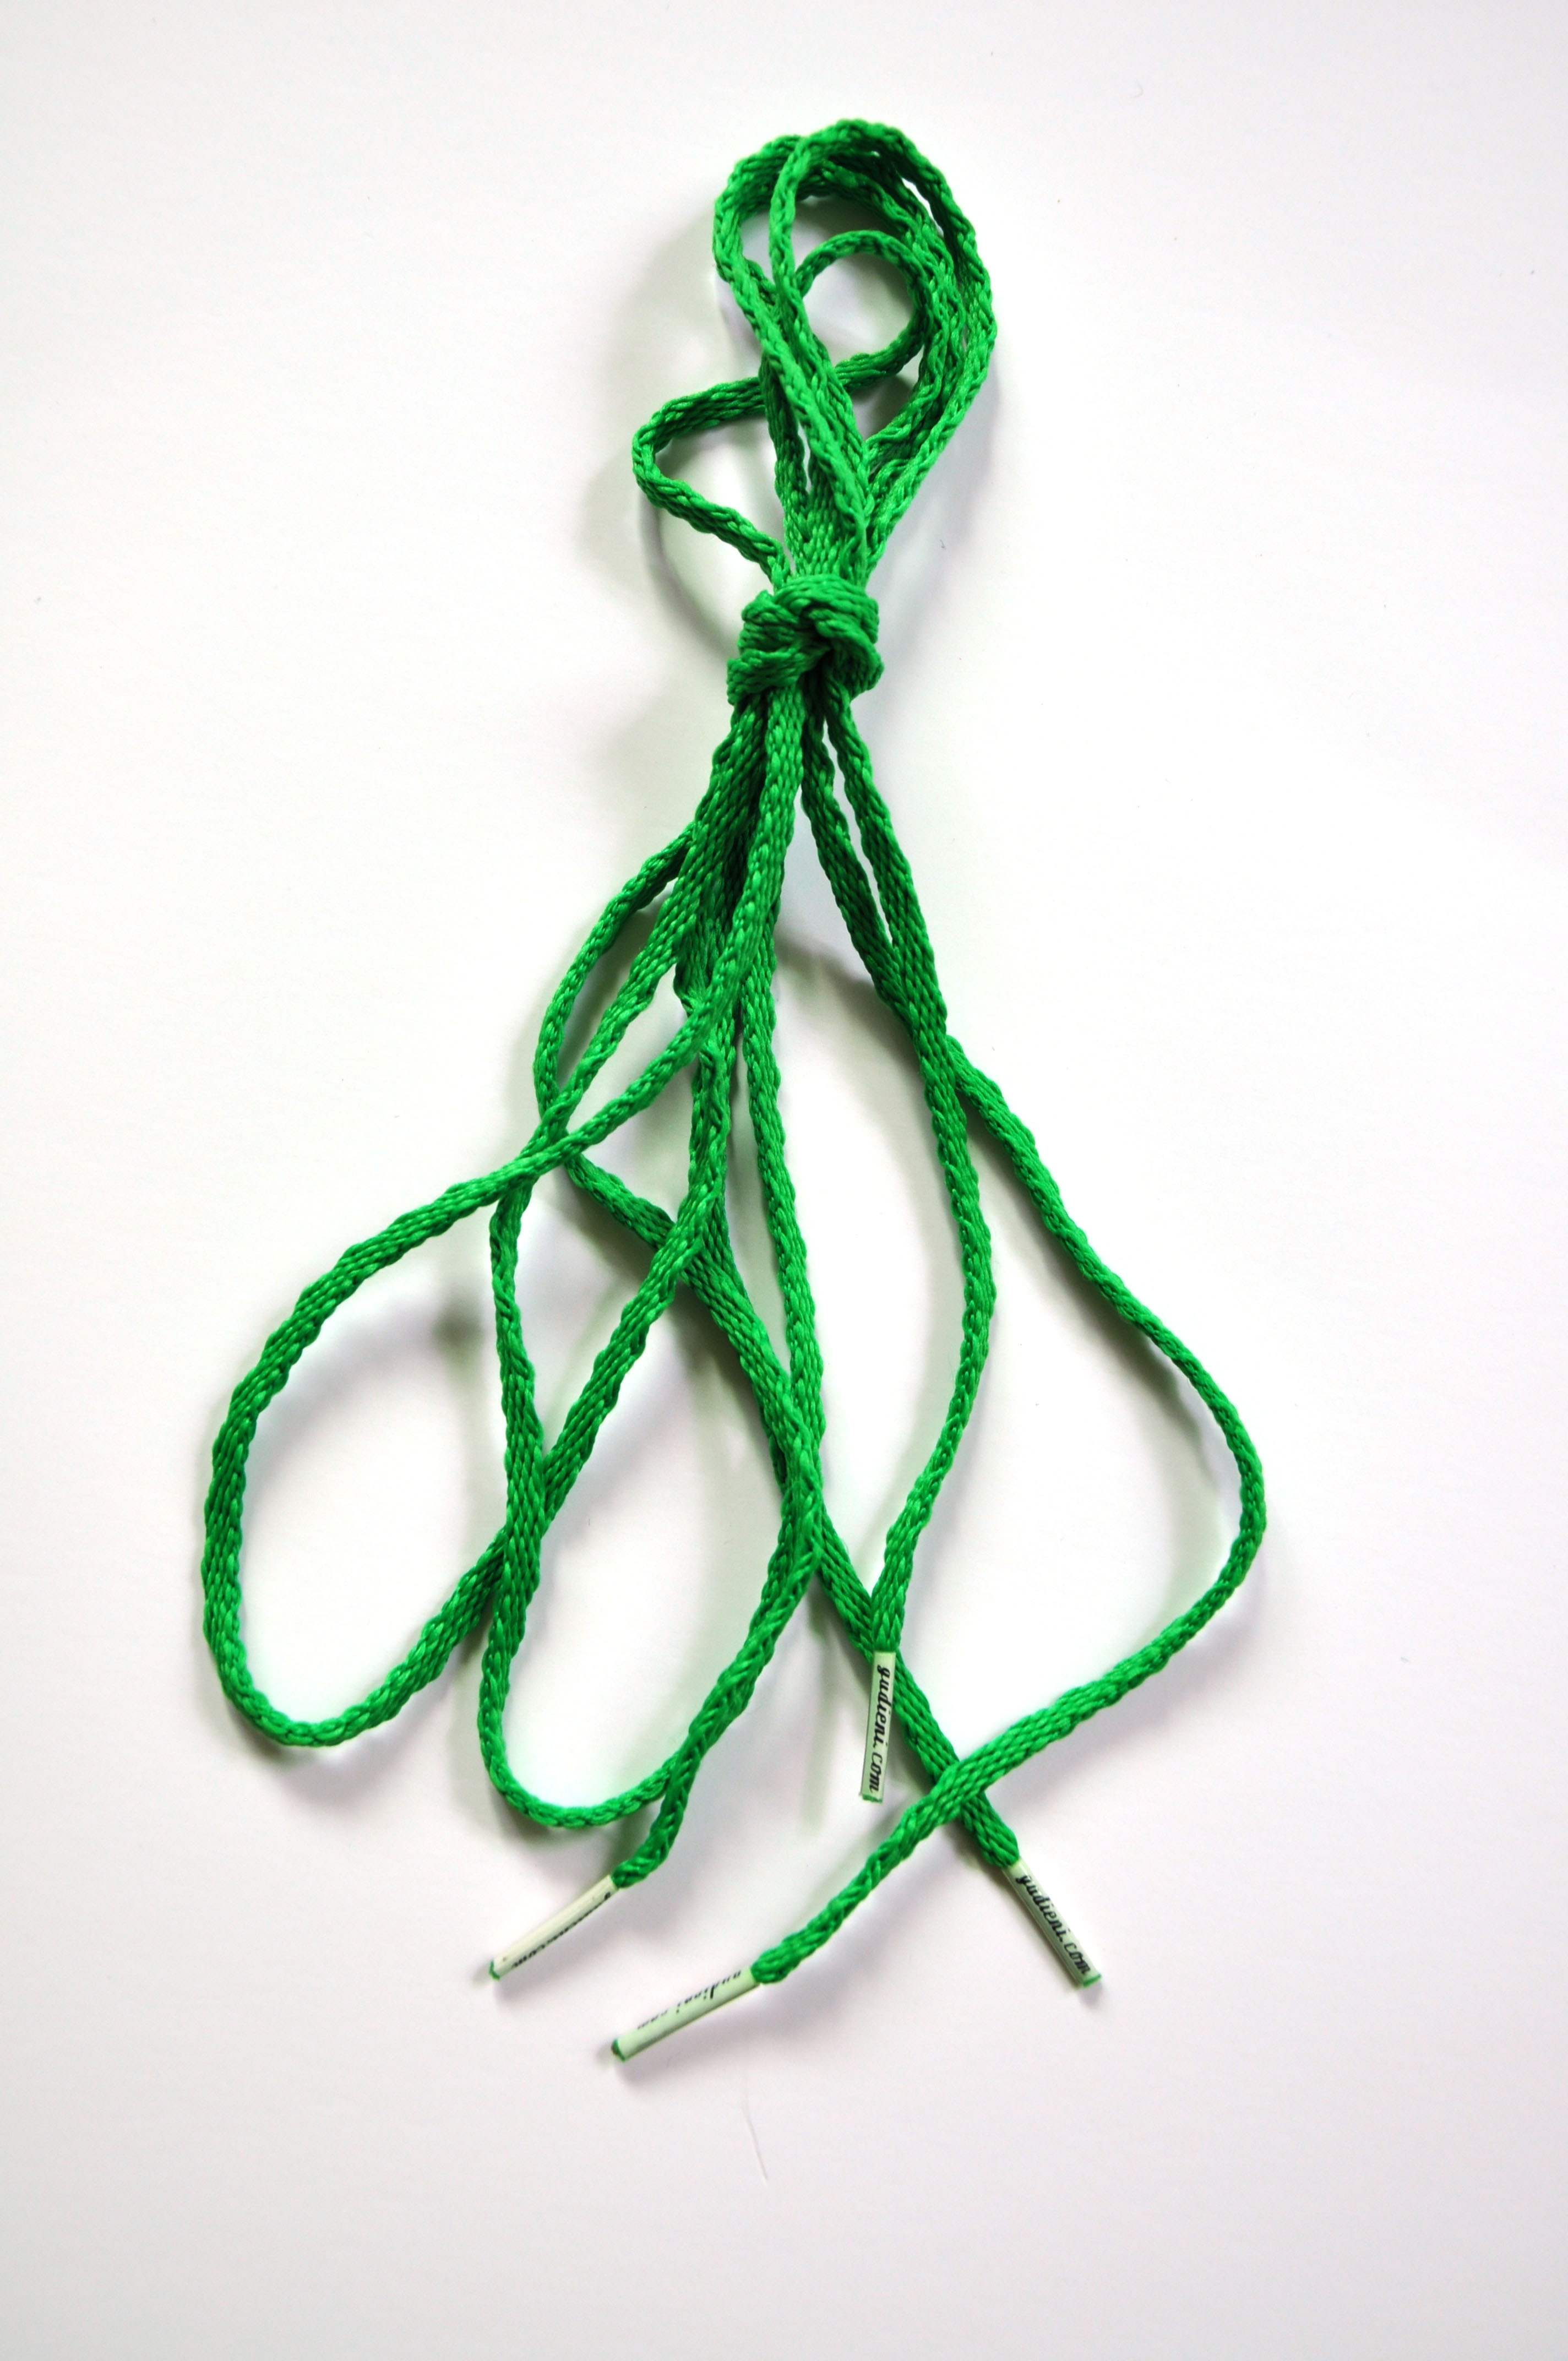 ODM shoelaces